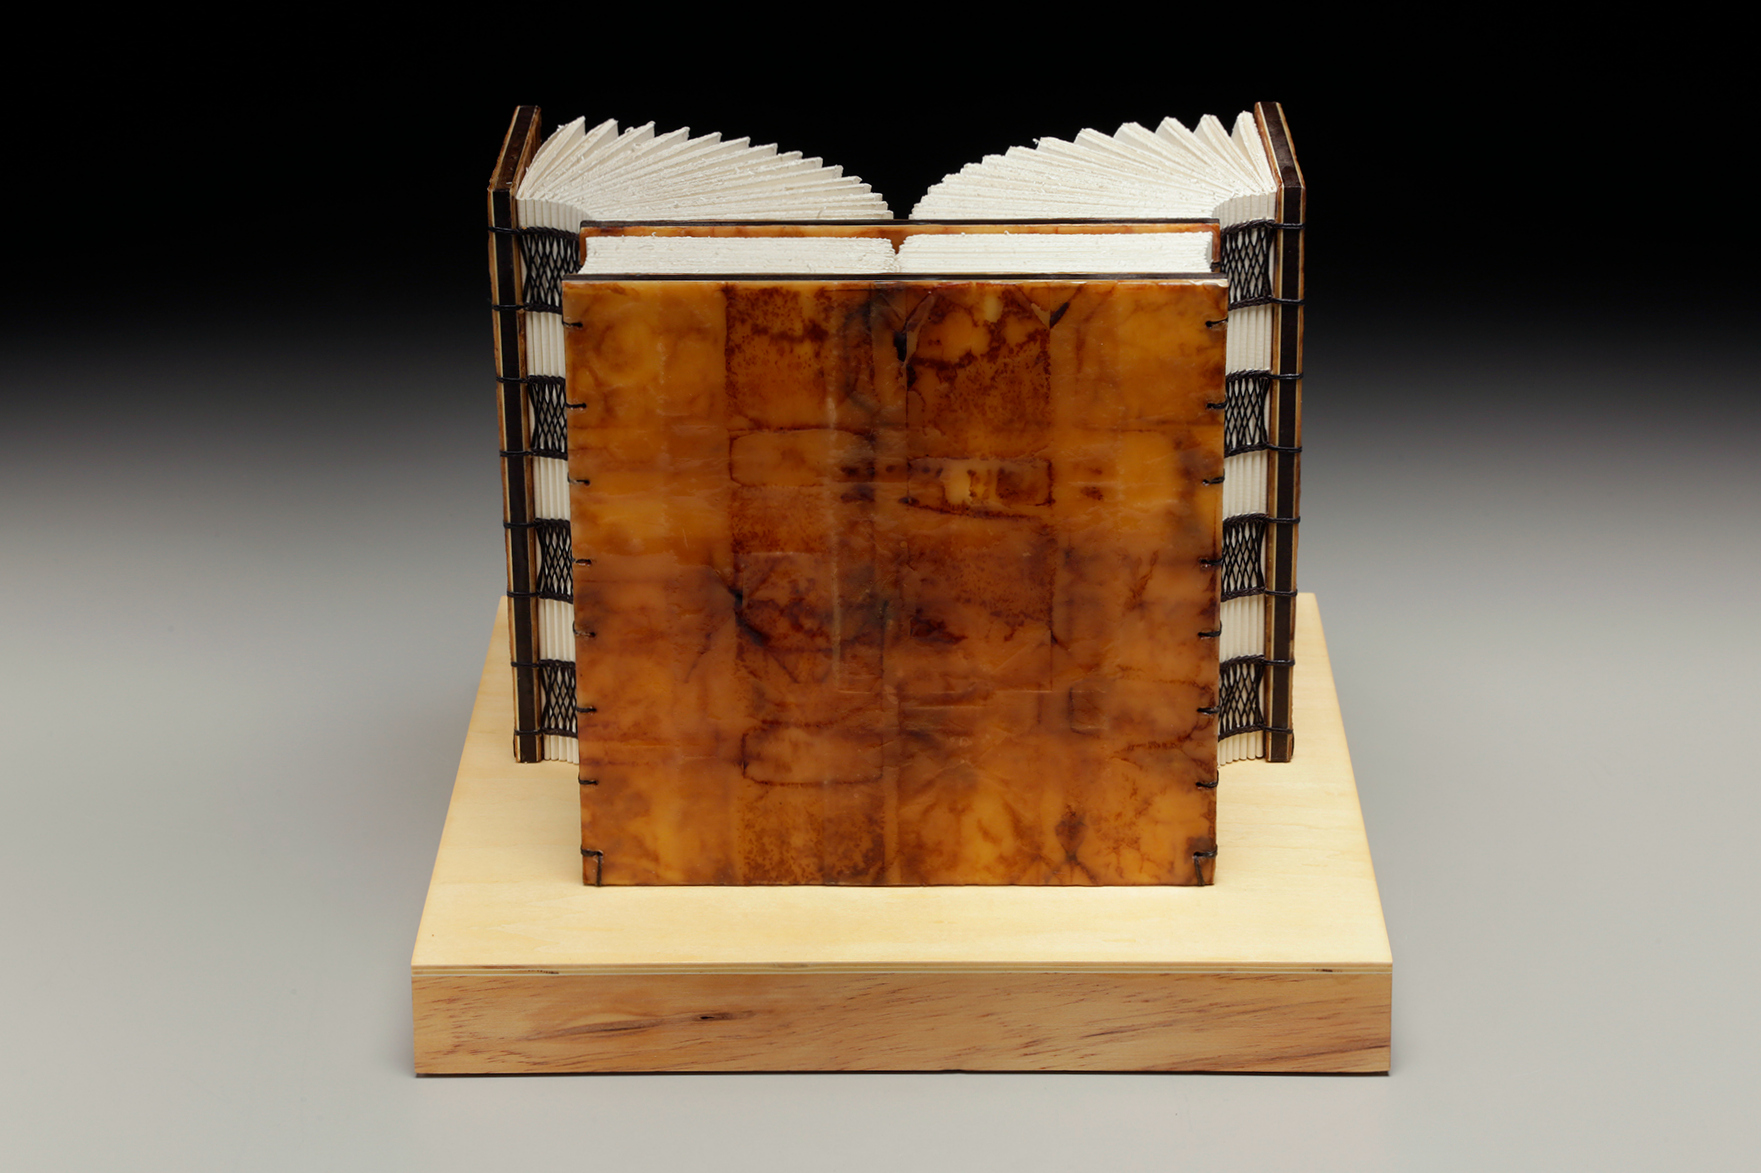 Beginning Now by Erin Keane : sculptural book : encaustic beeswax covers : 12 x 12 x 9.5 inches